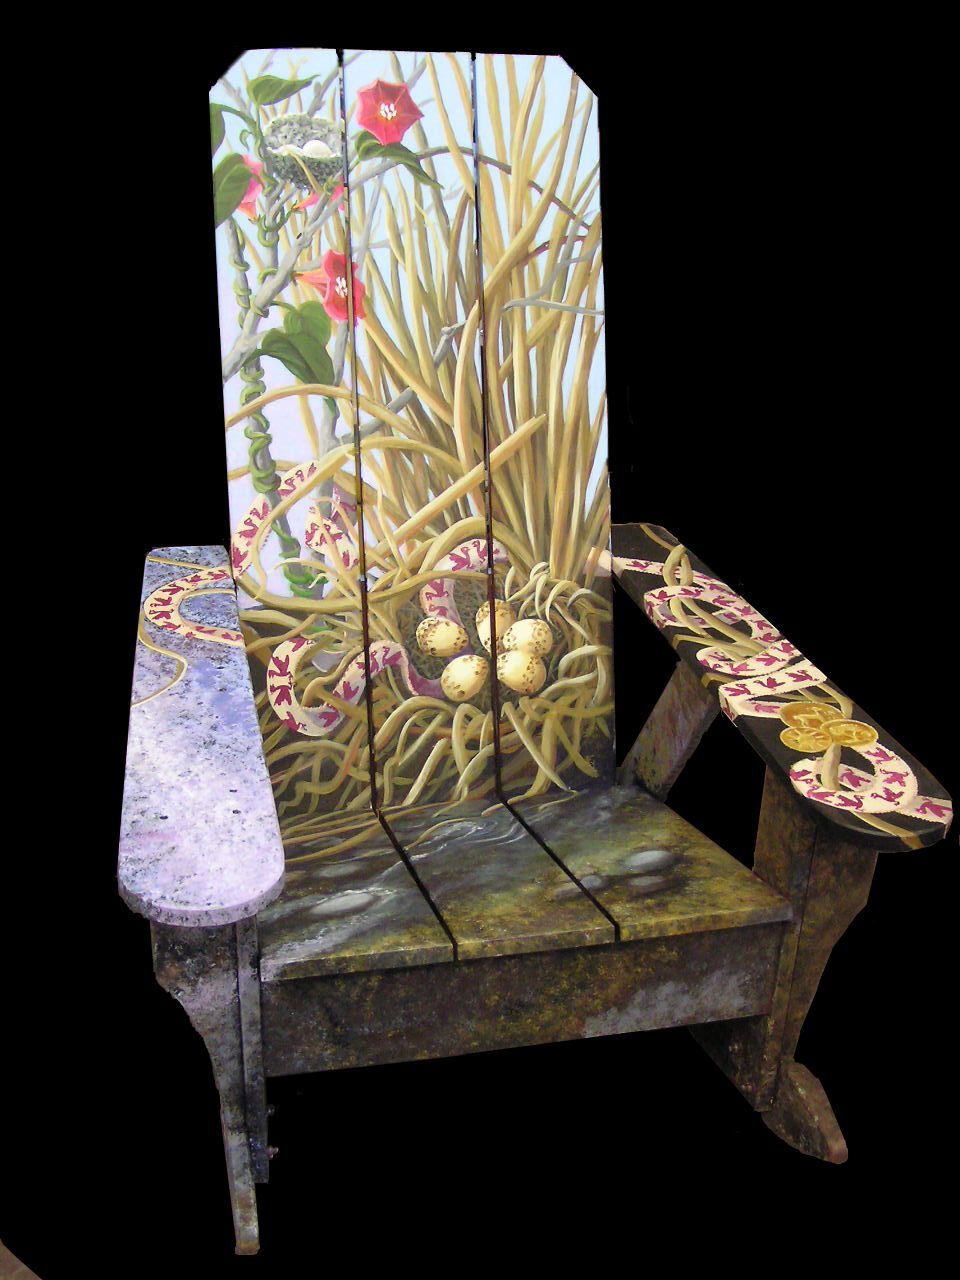 gorgeous painted chair!